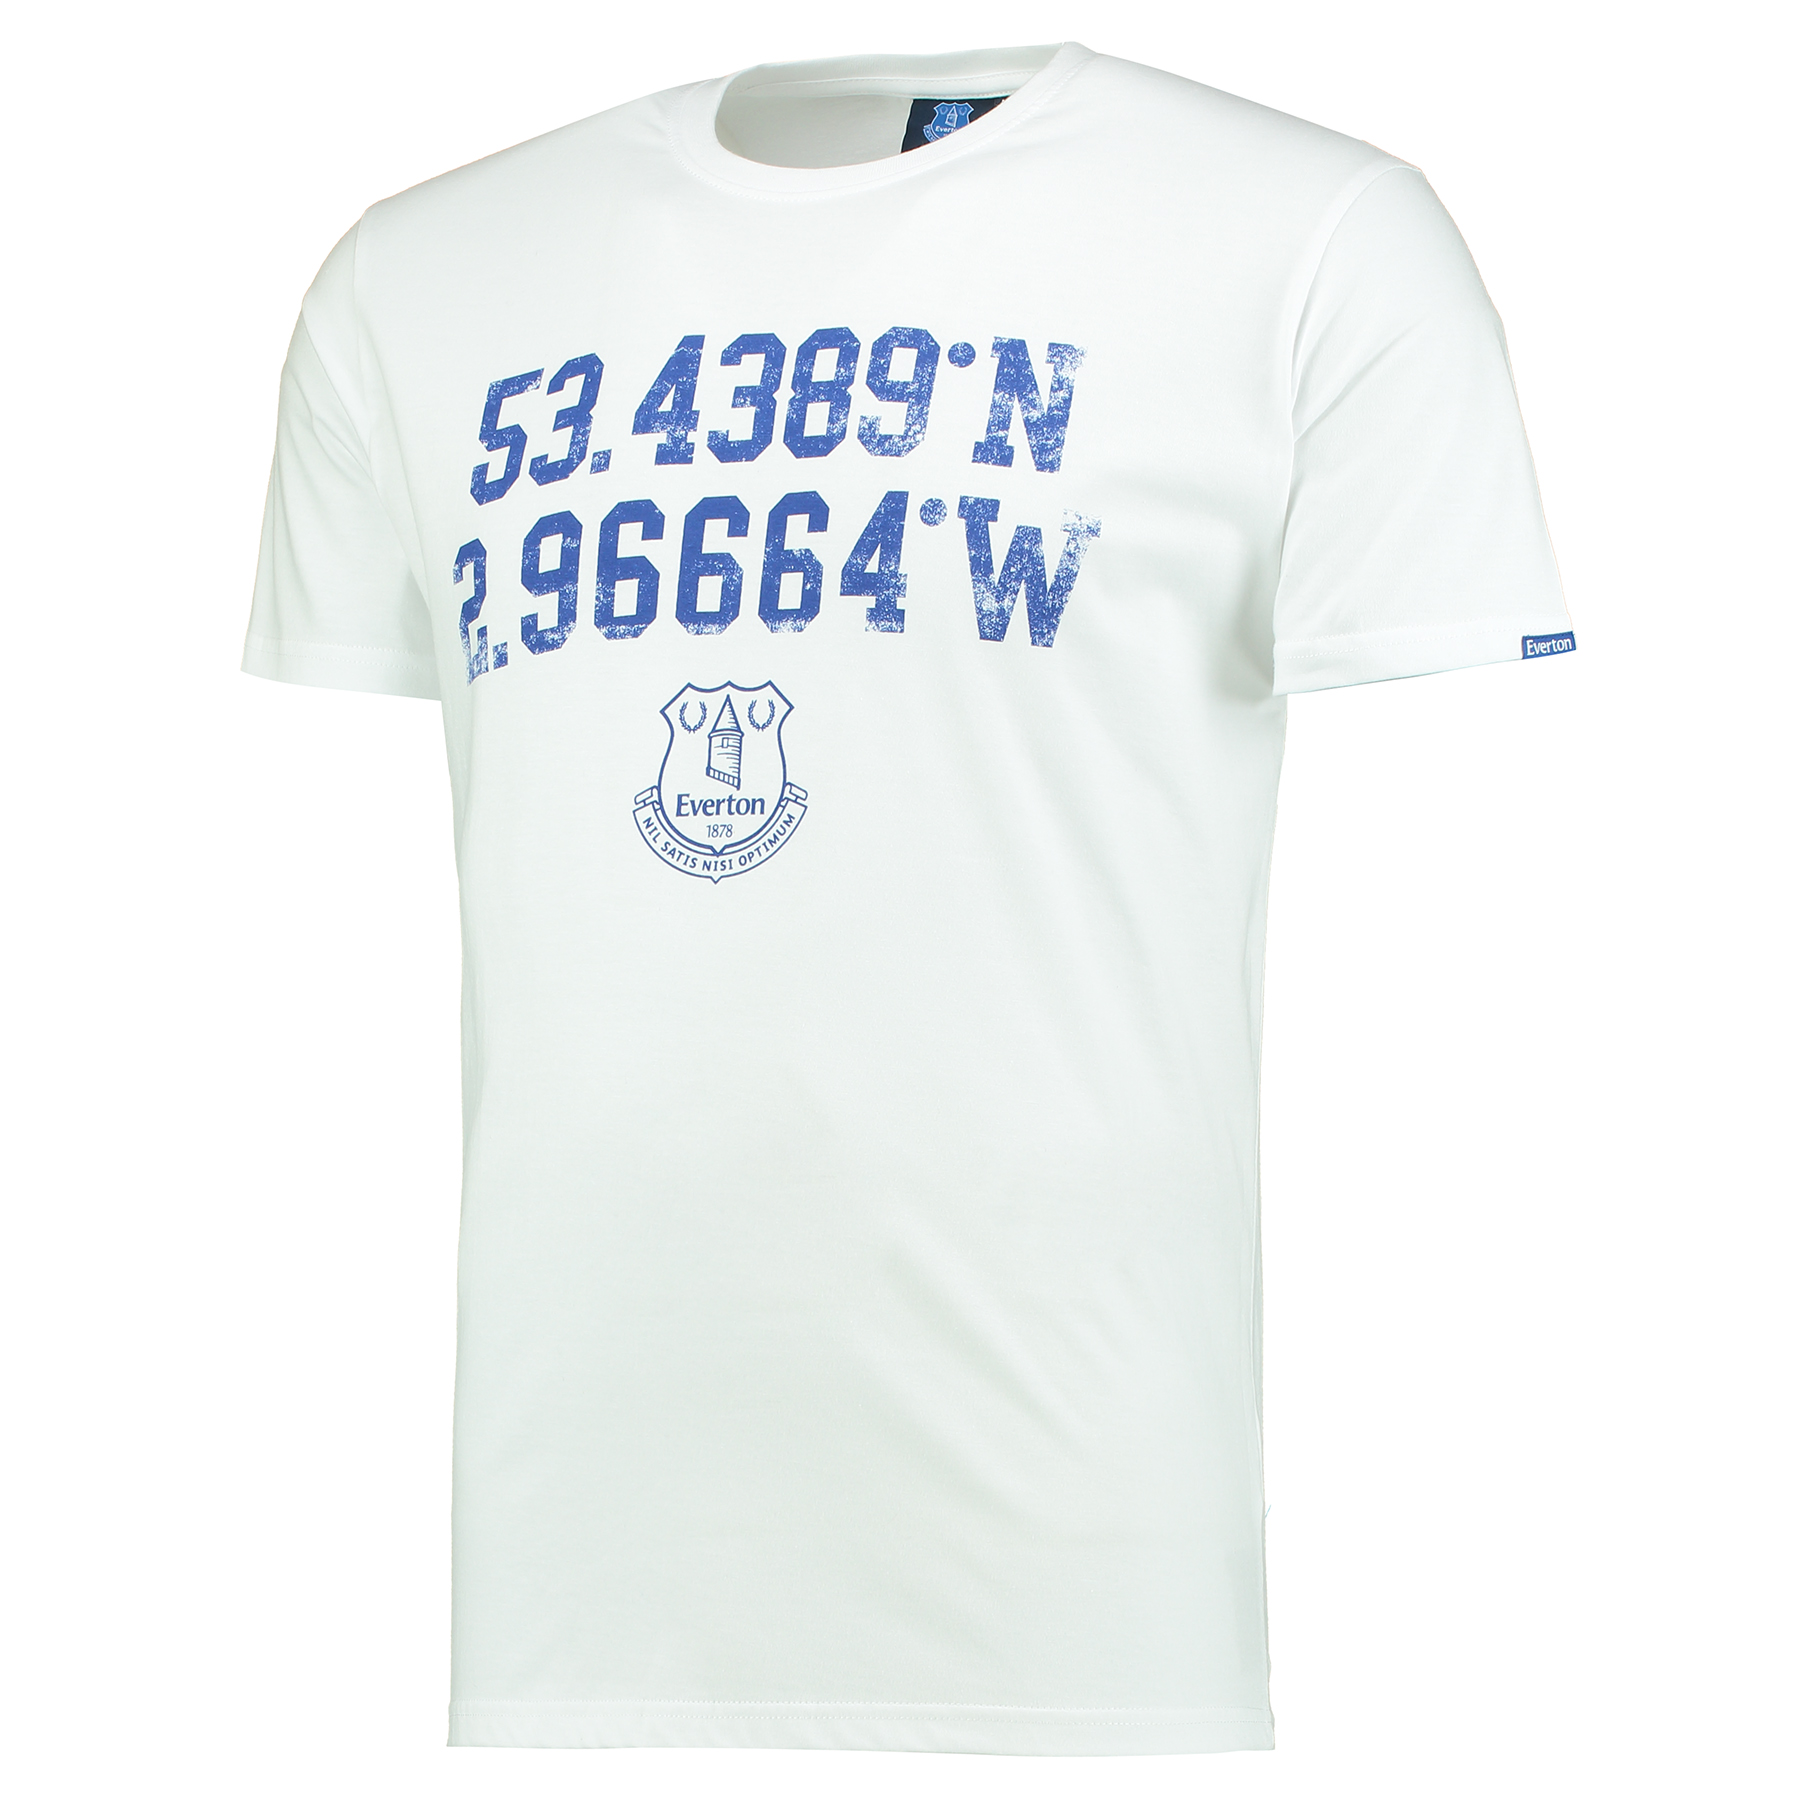 Everton Coordinate T-Shirt - White